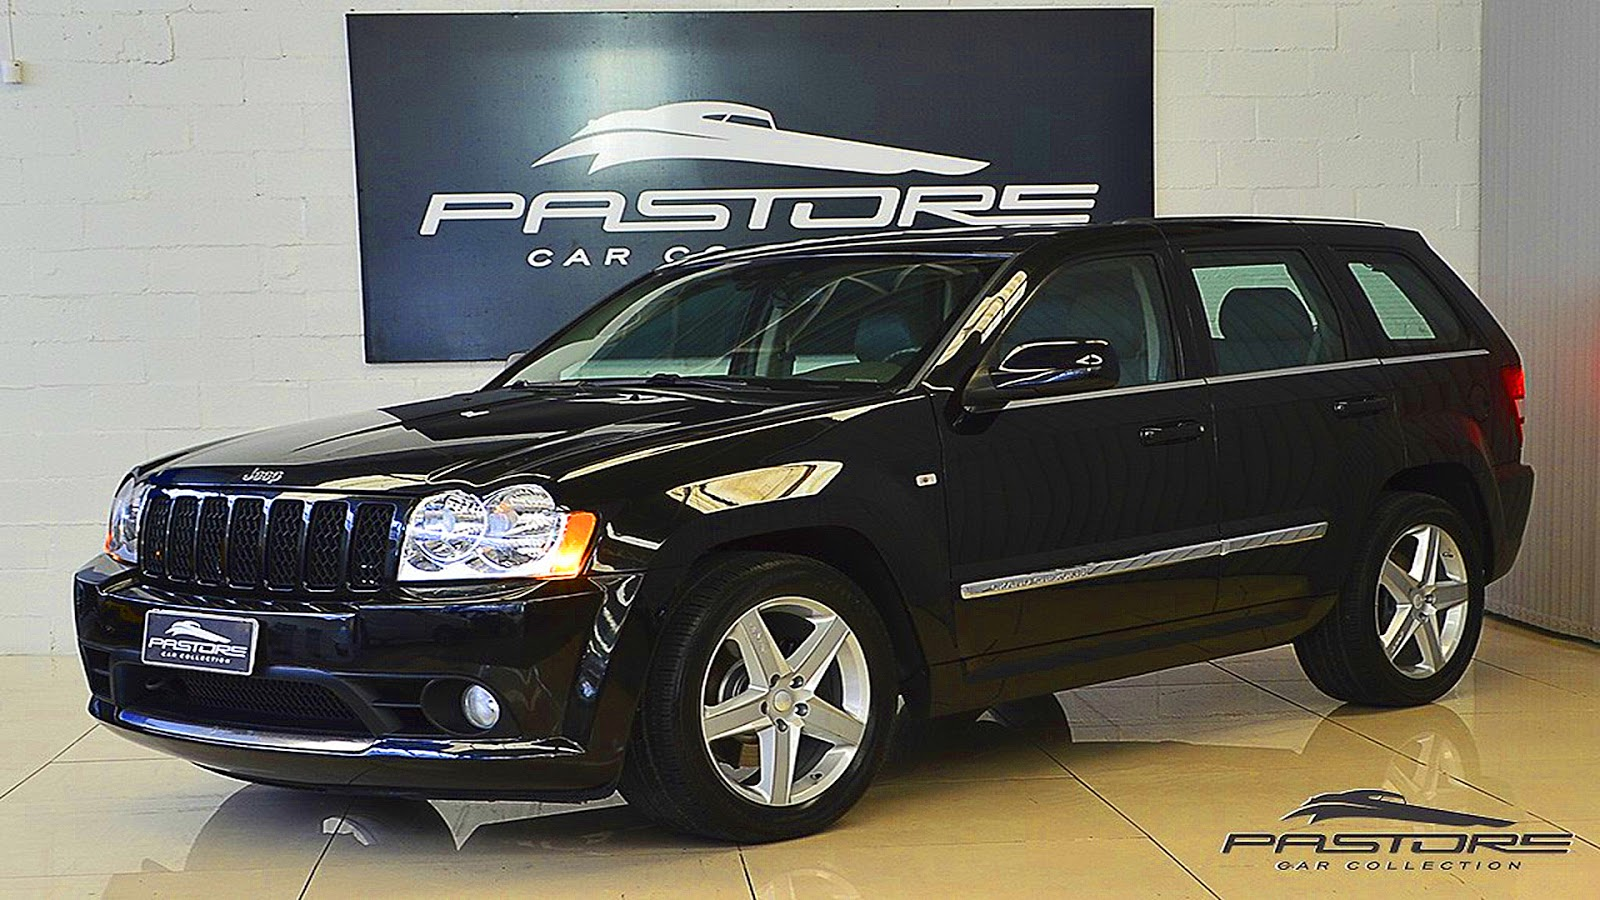 pastore jeep grand cherokee srt8 2006 preto aro 20 at5 4x4. Black Bedroom Furniture Sets. Home Design Ideas